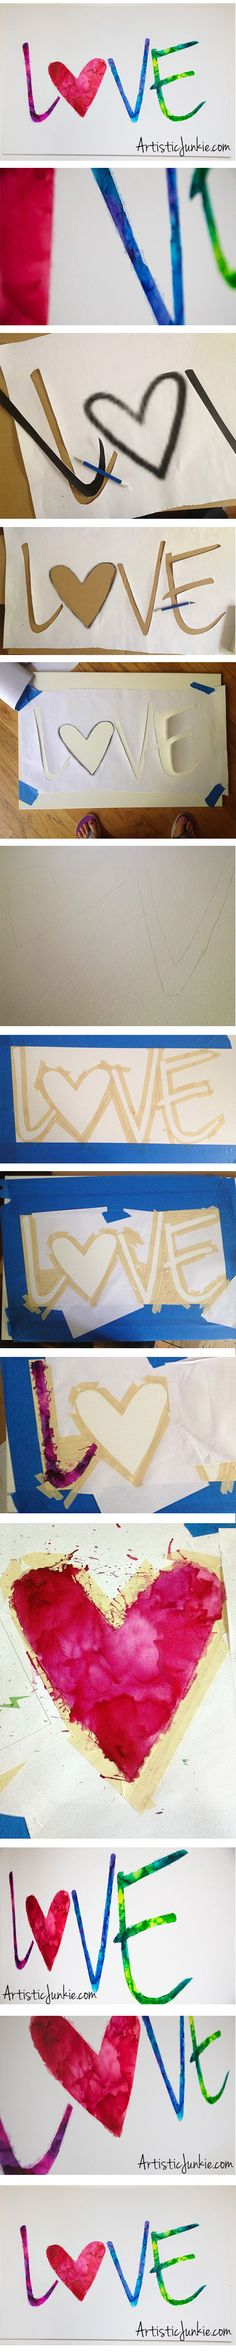 Love, Melted Crayon Art DIY tutorial